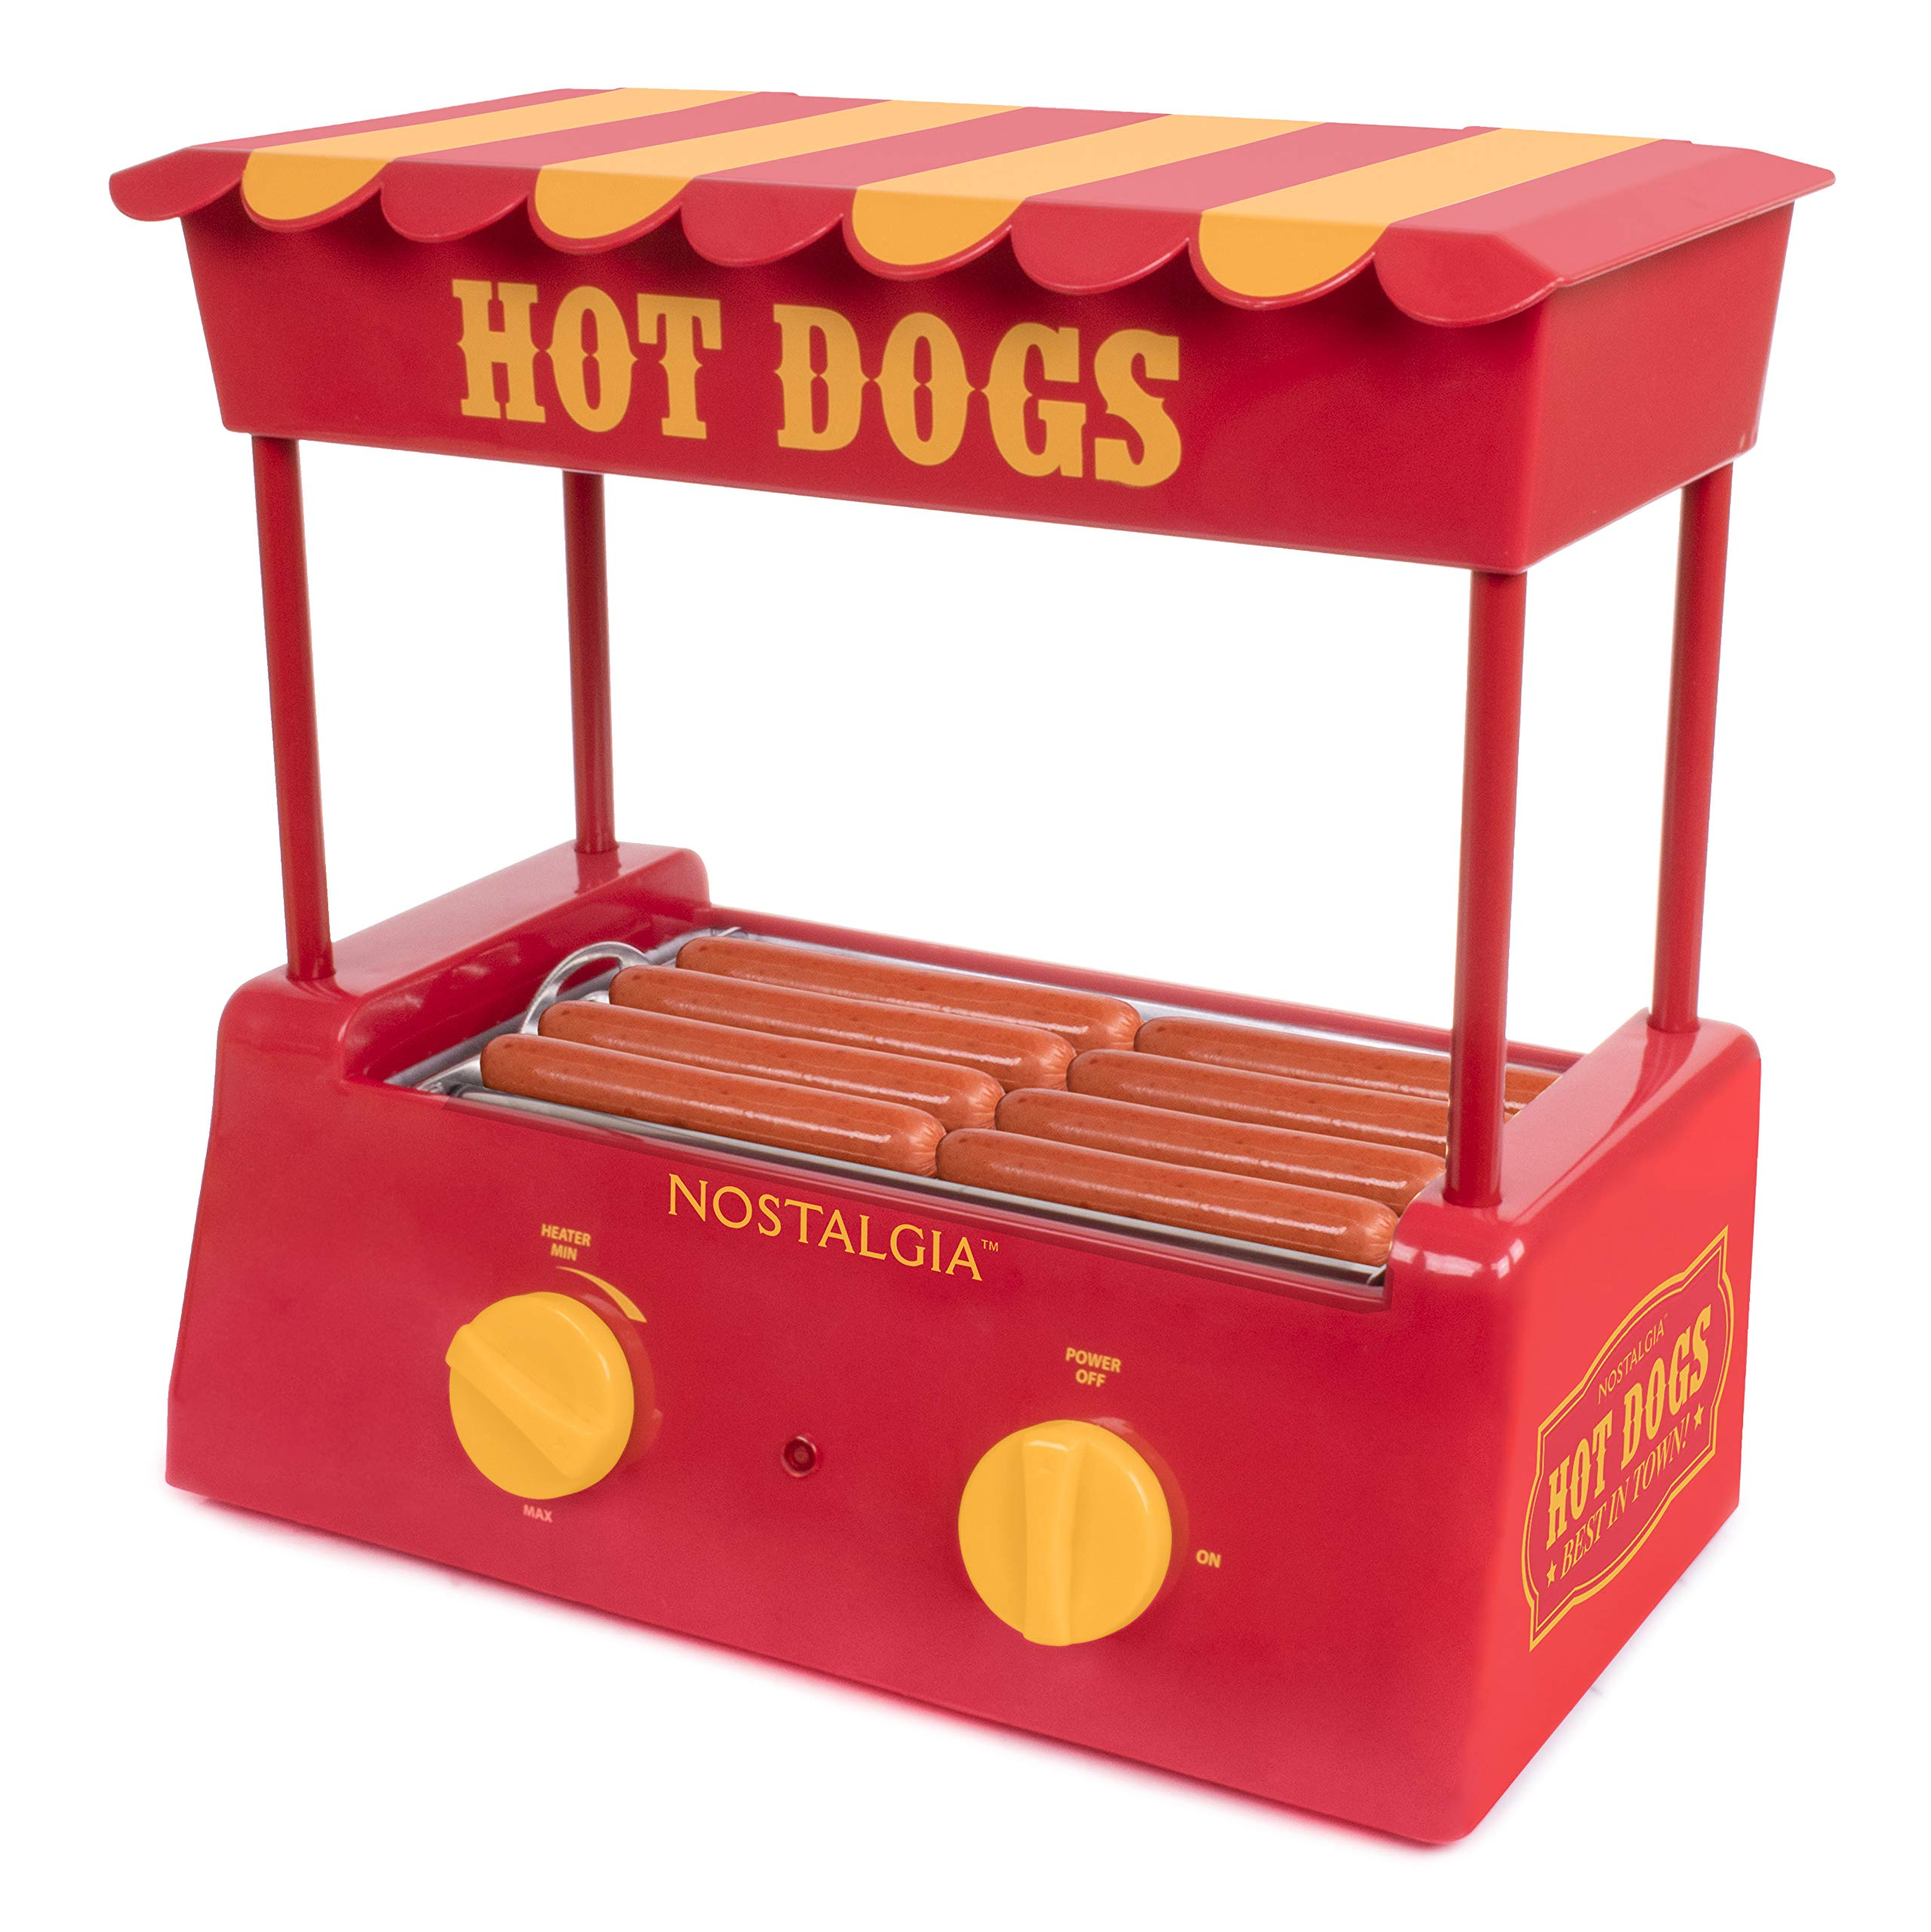 Nostalgia HDR8RY Roller Warmer 8 Hot Dog and 6 Bun Capacity, Red/Yellow